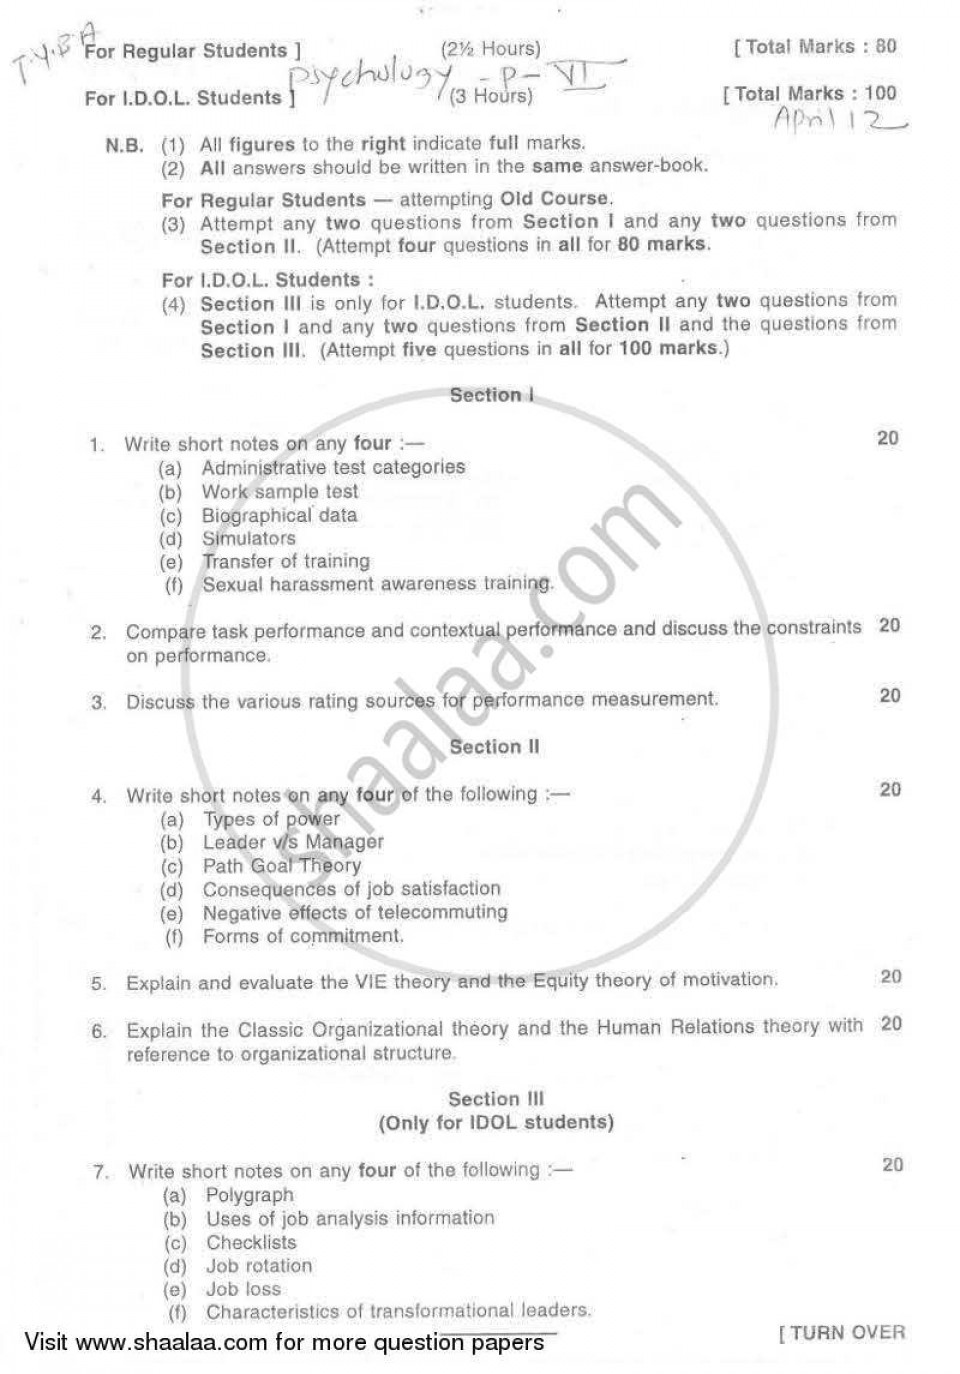 017 Psychologyearch Paper On Dreams University Of Mumbai Bachelor Industrial Organizational T Y Yearly Pattern Semester Tyba 2011 29a03925dfc524f2aa4cb10e4d3da996a Singular Psychology Research 960